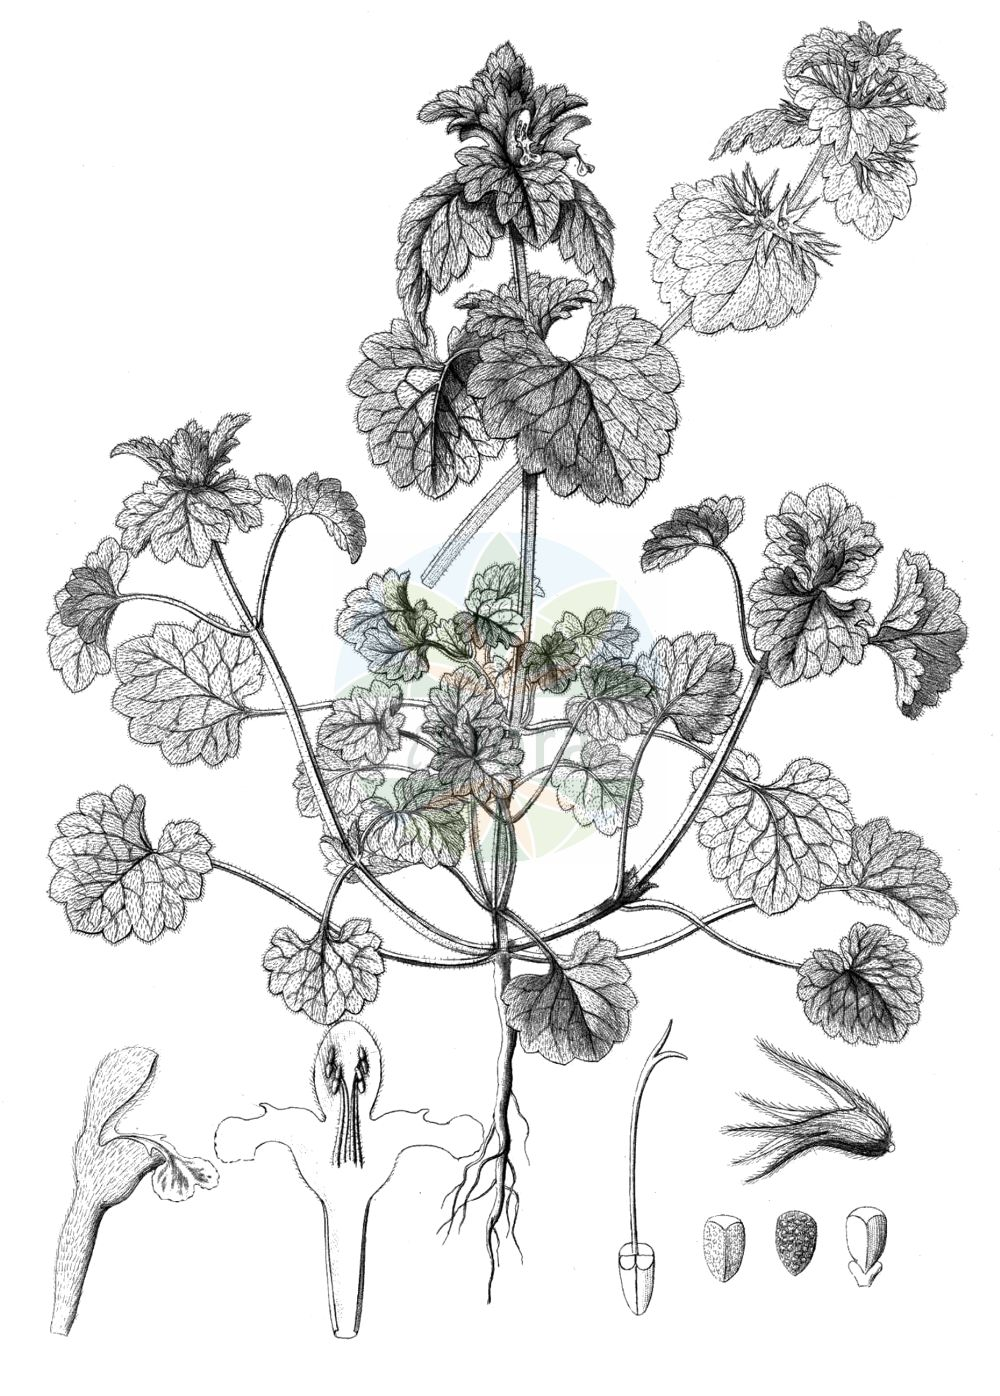 Historische Abbildung von Lamium confertum (Mittlere Taubnessel - Northern Dead-nettle). Das Bild zeigt Blatt, Bluete, Frucht und Same. ---- Historical Drawing of Lamium confertum (Mittlere Taubnessel - Northern Dead-nettle).The image is showing leaf, flower, fruit and seed.(Lamium confertum,Mittlere Taubnessel,Northern Dead-nettle,Lamium confertum,Lamium coutinhoi,Lamium intermedium,Mittlere Taubnessel,Northern Dead-nettle,Intermediate Deadnettle,Lamium,Taubnessel,Deadnettle,Lamiaceae,Lippenbluetengewaechse,Lippenbluetler,Nettle family,Blatt,Bluete,Frucht,Same,leaf,flower,fruit,seed,Reichenbach (1823-1832))